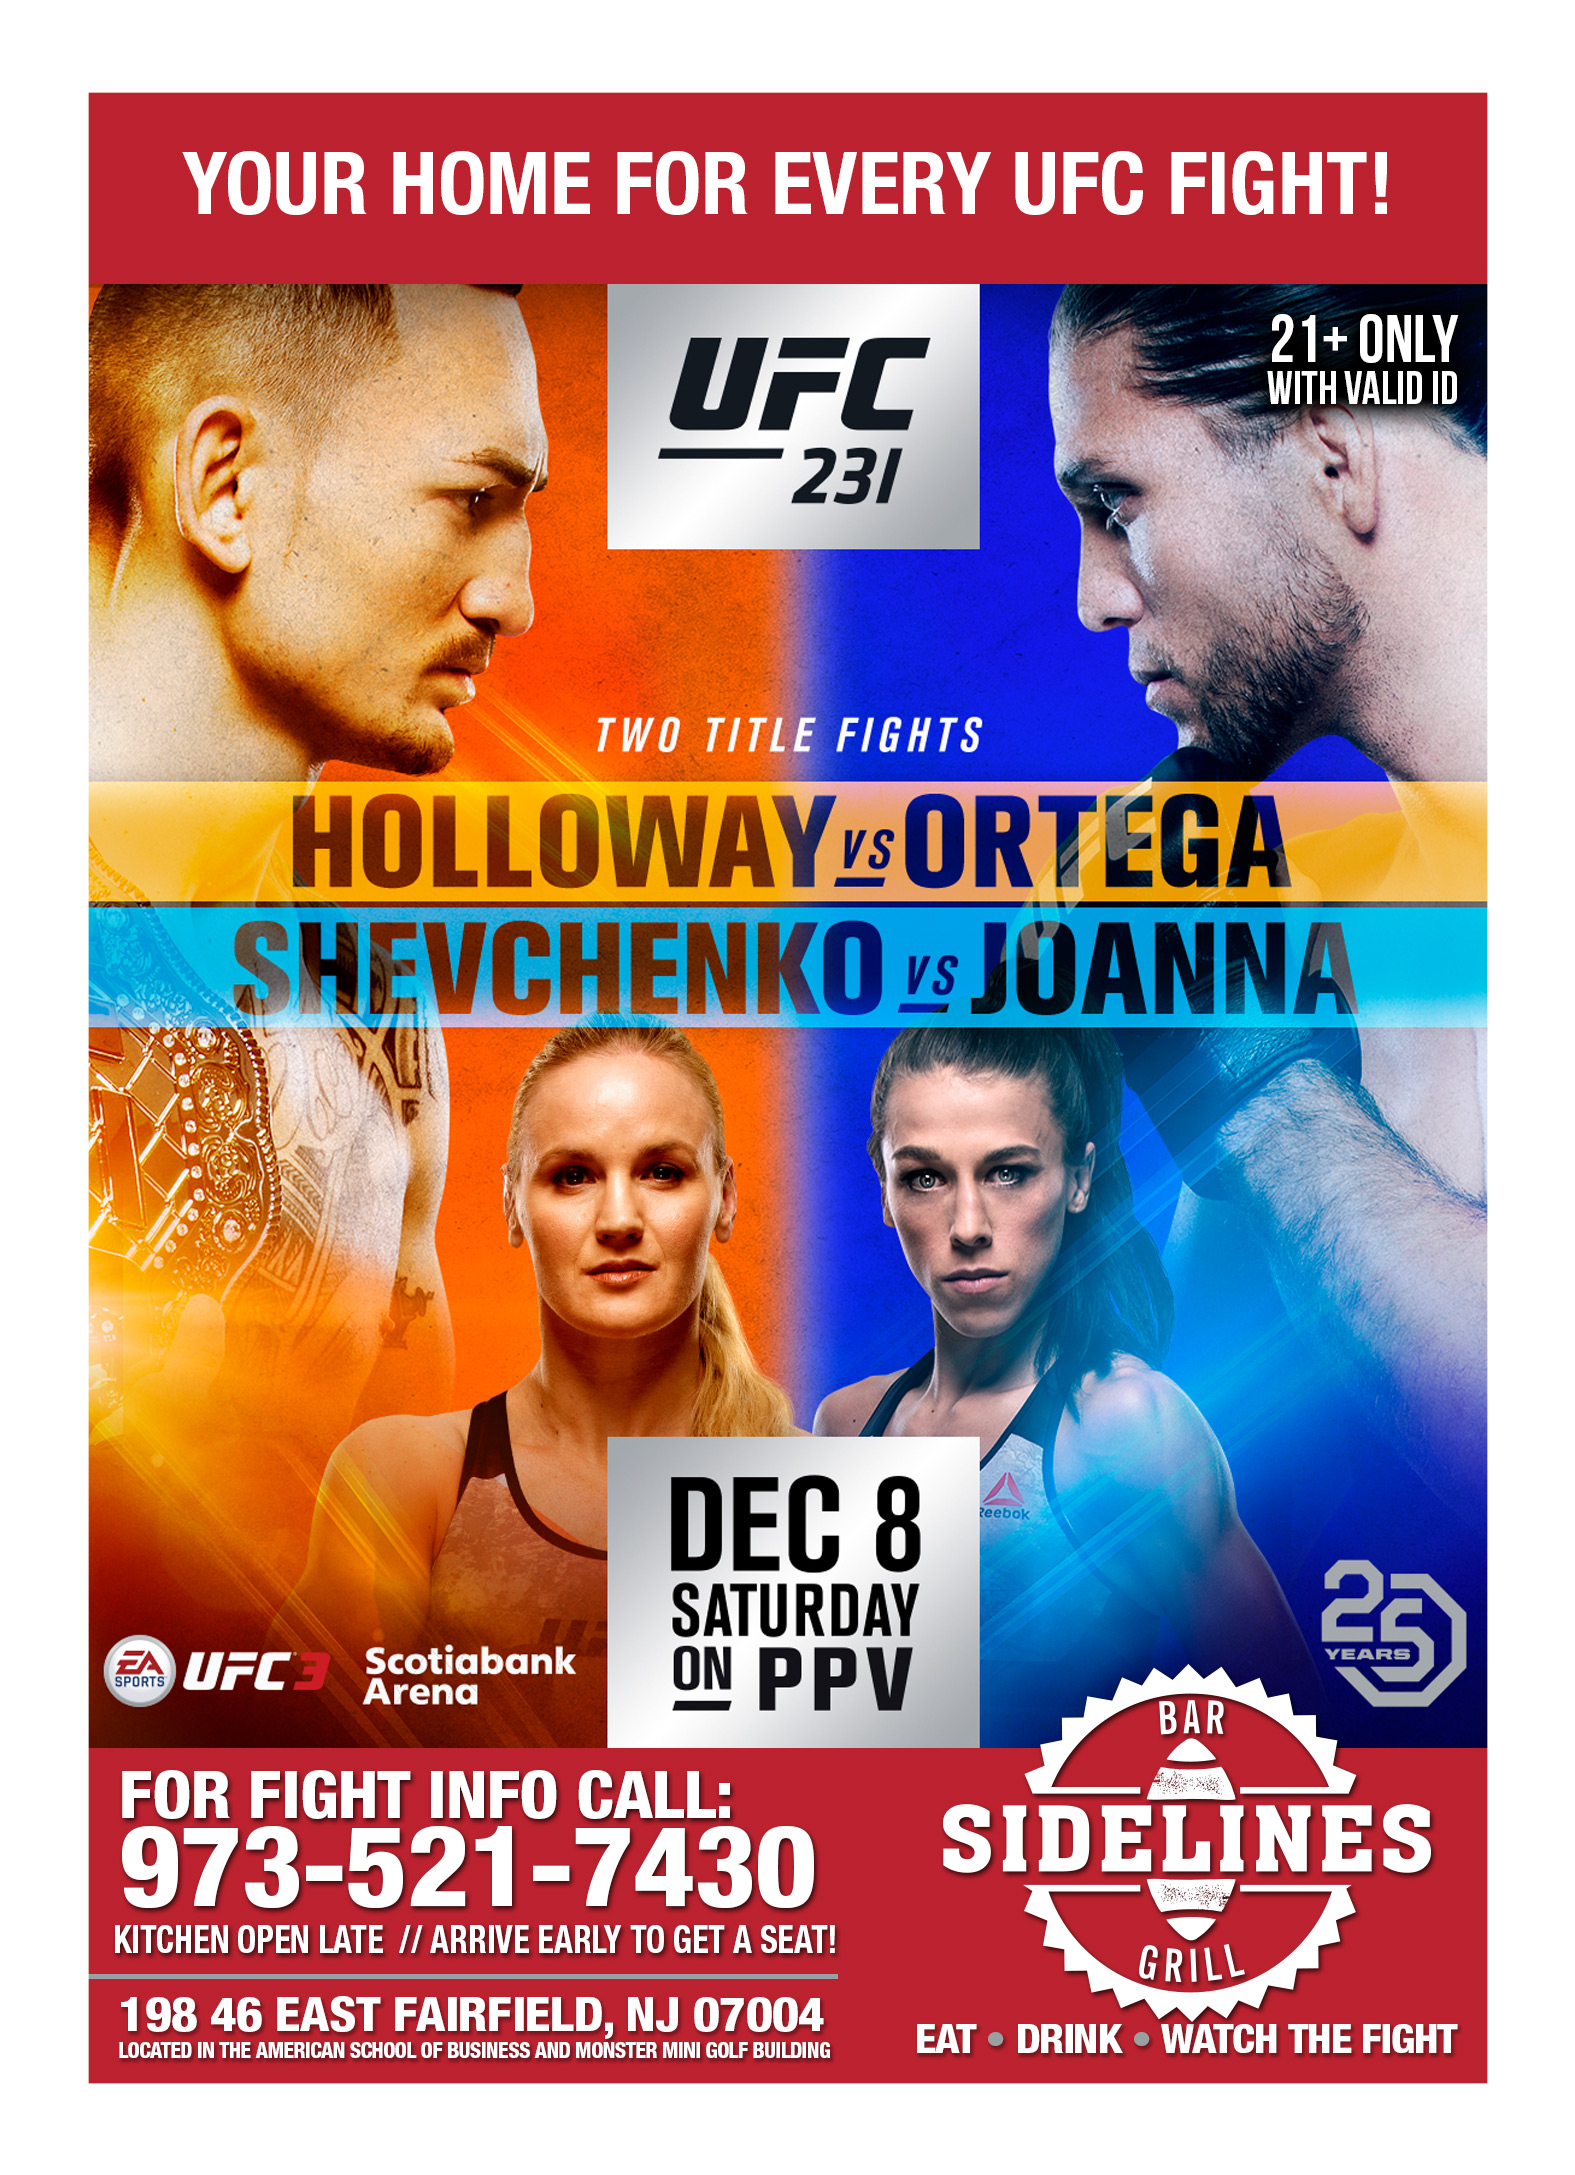 G-_~Important-Files_~~~Customer-Files_Sidelines-Bar-&-Grill_Sidelines-UFC-231_Sidelines_UFC231_5x7_AD.jpg